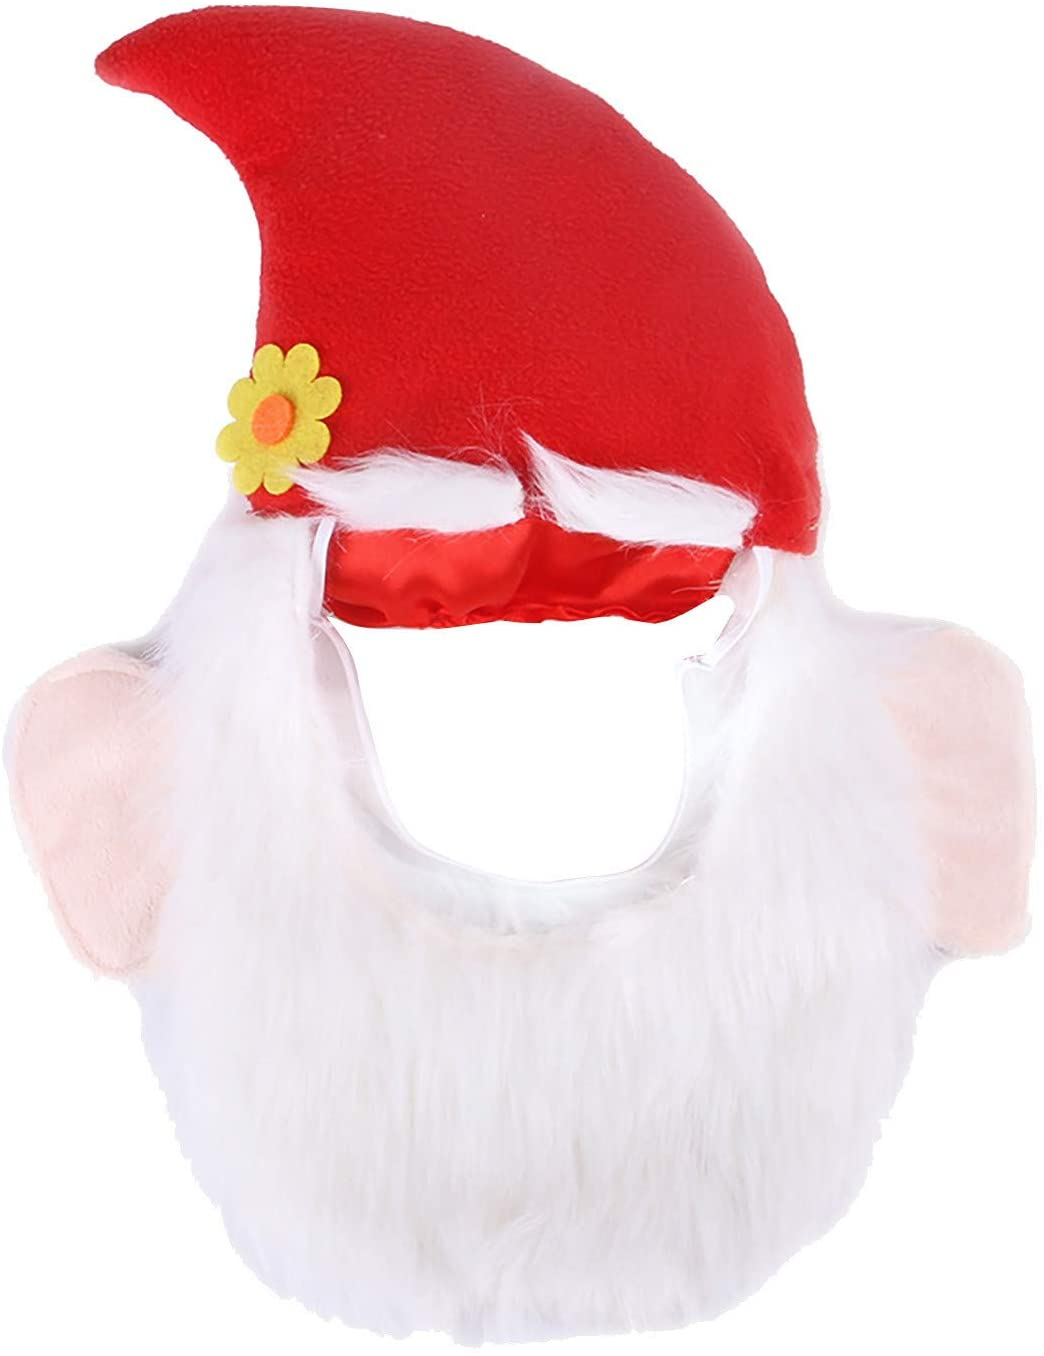 wihakdh 1 Piece Pet Dog Hat, Cute Santa Claus Beard Hat, Cat Scarf Dog Small Animal Hat, Fashion and Warm Hat Decoration for Pet Cat and Dog, Pet Costumes, Pet Christmas Cloth